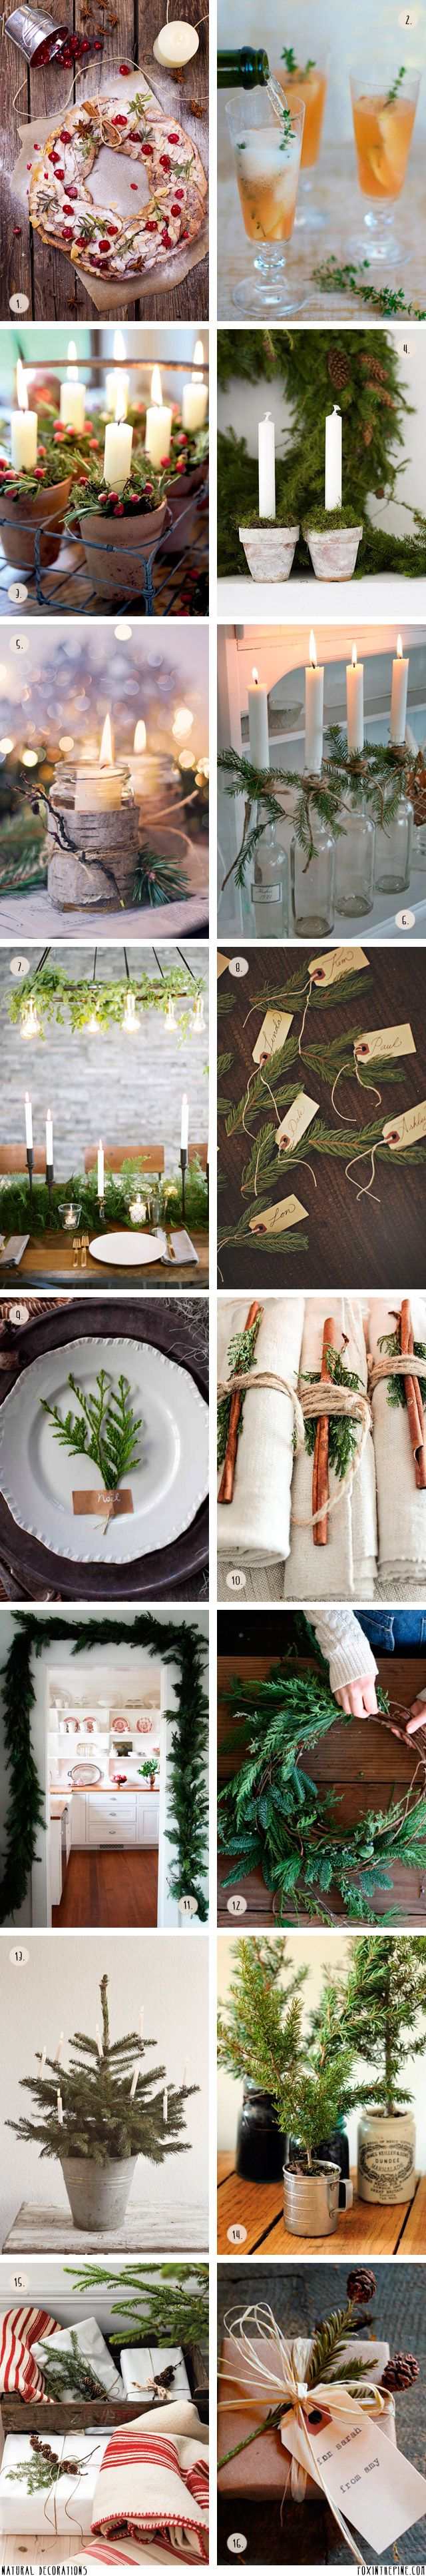 Decorating with nature in the home for the holidays   //   FOXINTHEPINE.COM